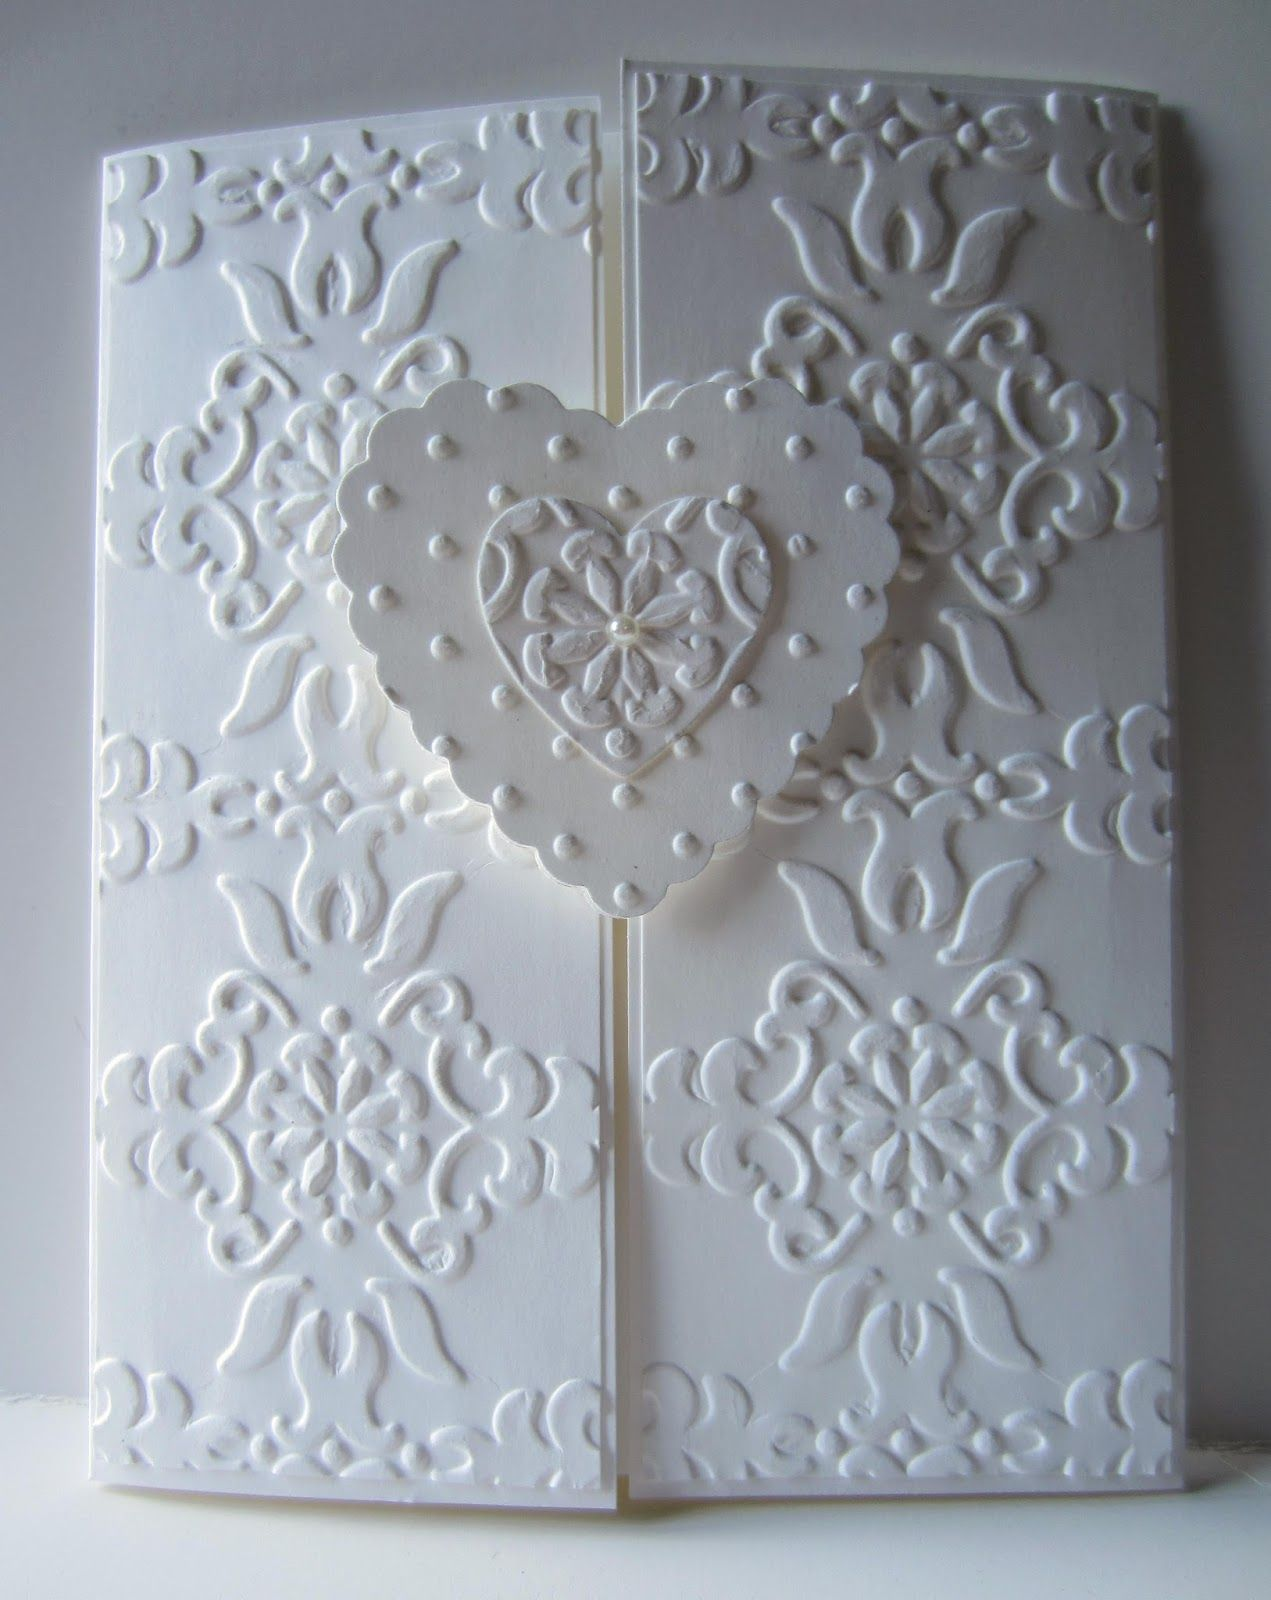 how to emboss wedding invitations diy%0A Gatefold format  white on white  baroque embossing folder texture perfectly  placed on the panels textured hearts  two hearts make one on the closure